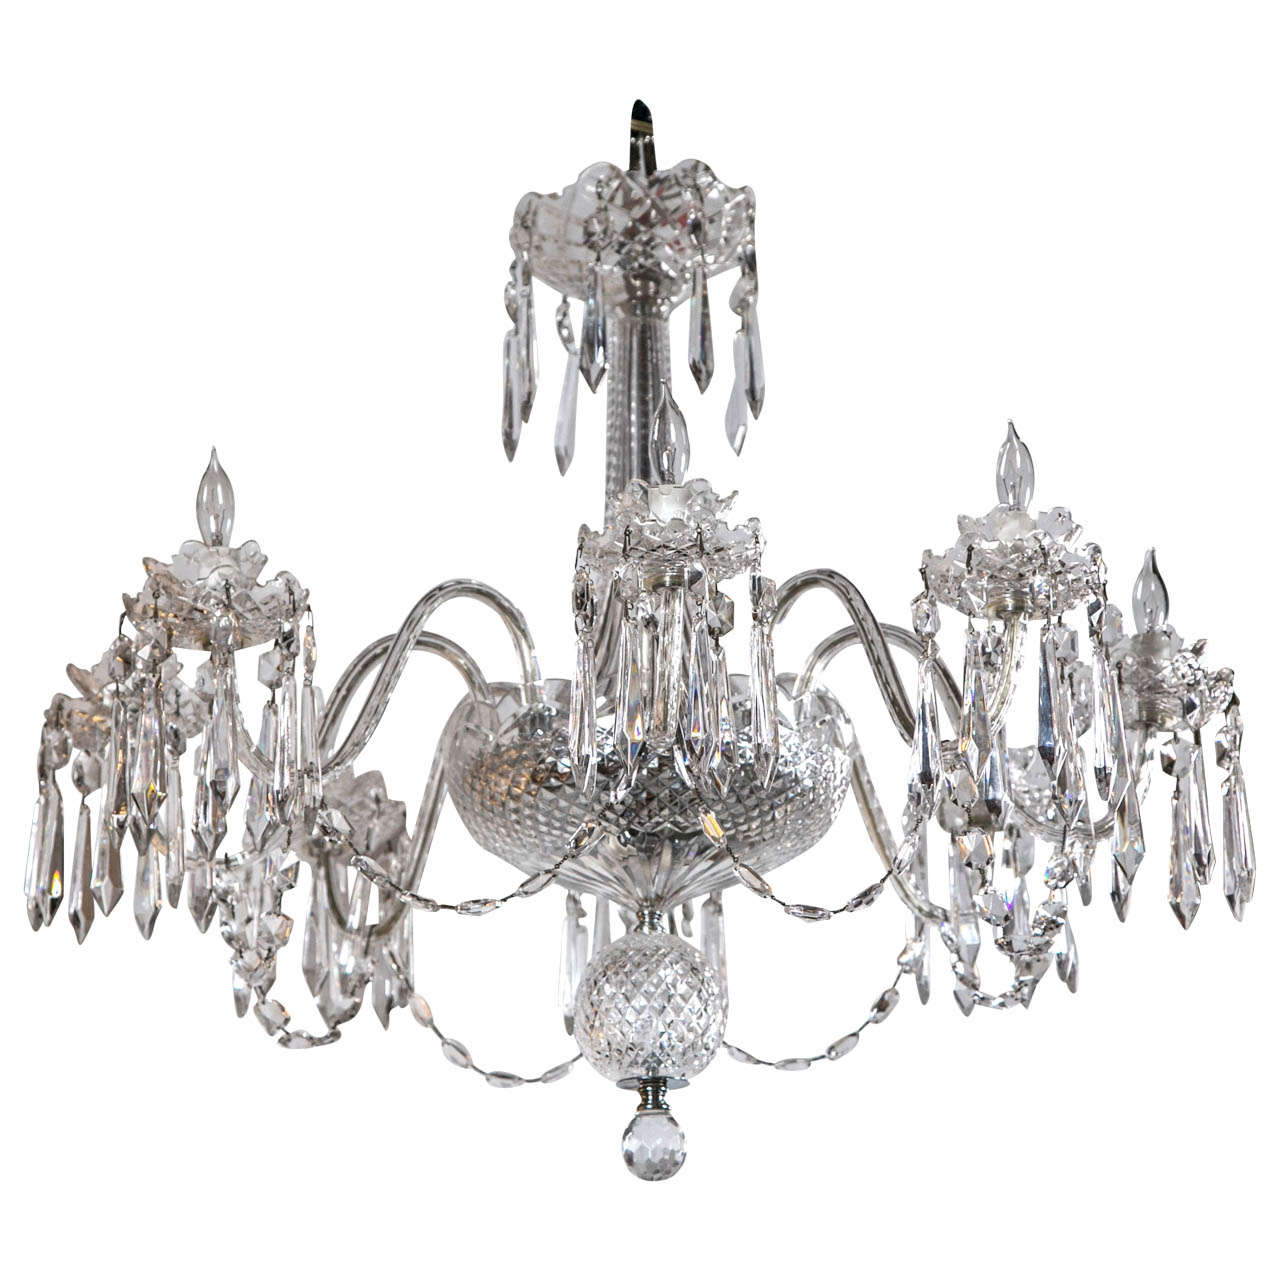 Waterford Crystal Chandelier For Sale At 1stdibs